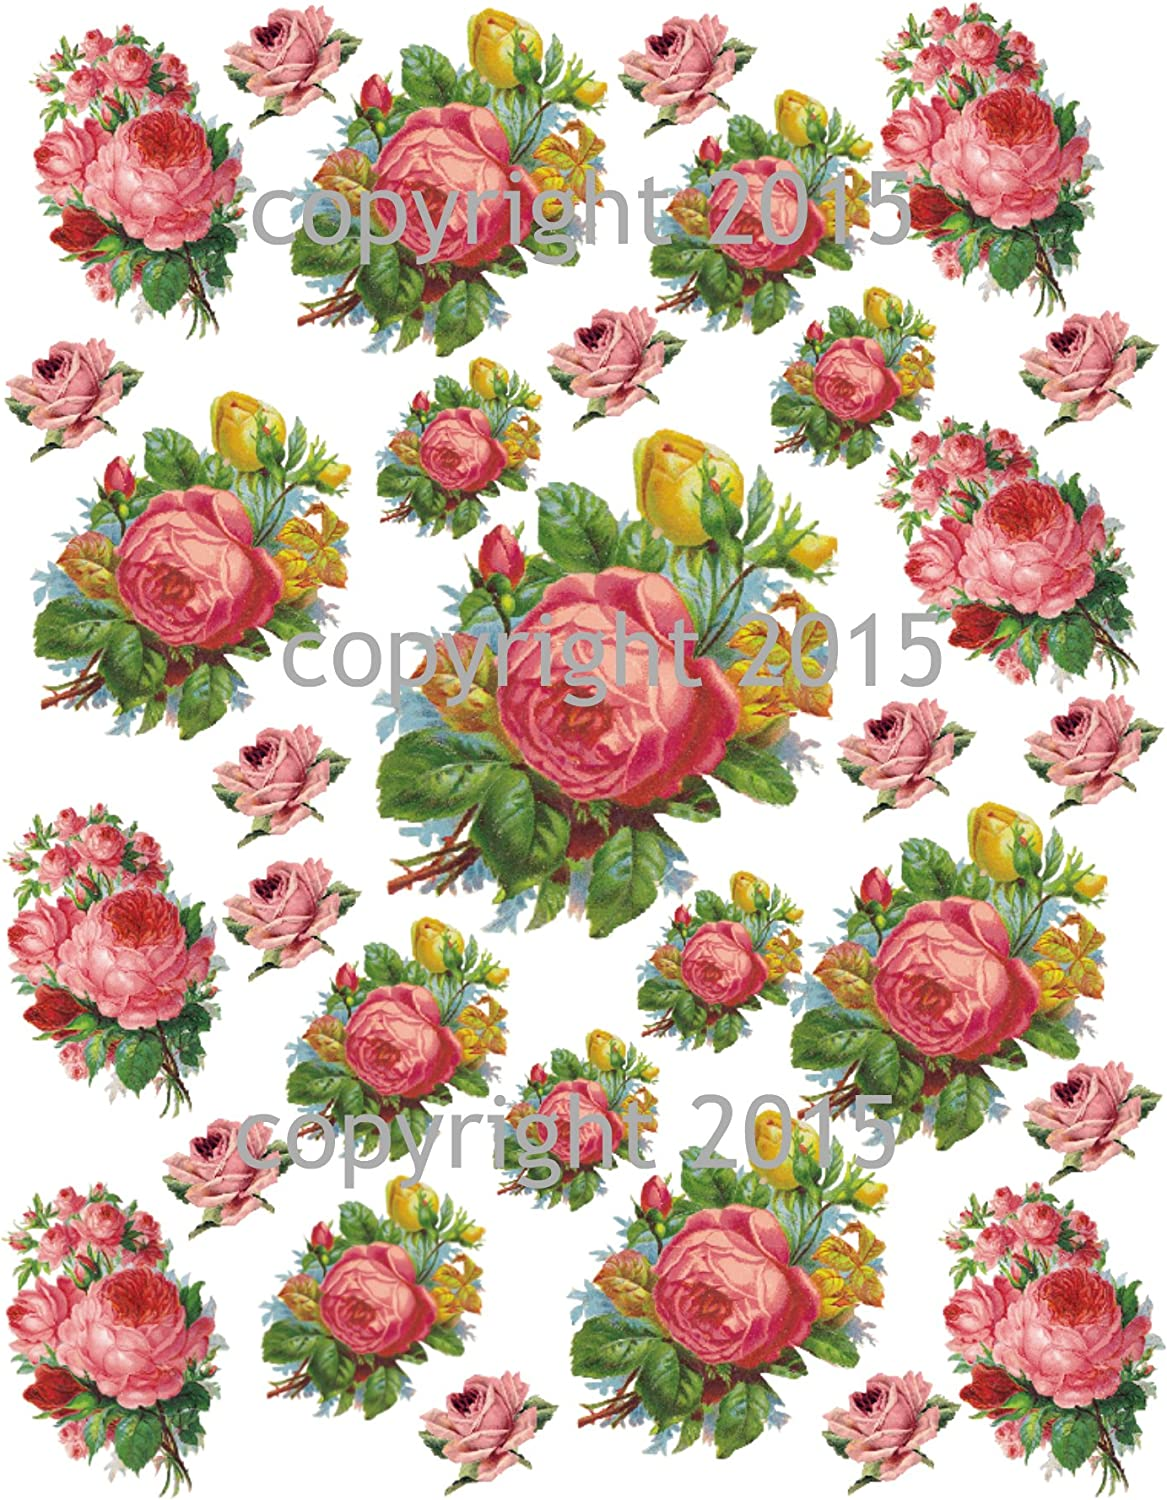 Victorian Pink and White Roses Collage Sheet Printed Collage Sheet Decoupage Altered Art Scrapbook Weddings Victorian Scrap